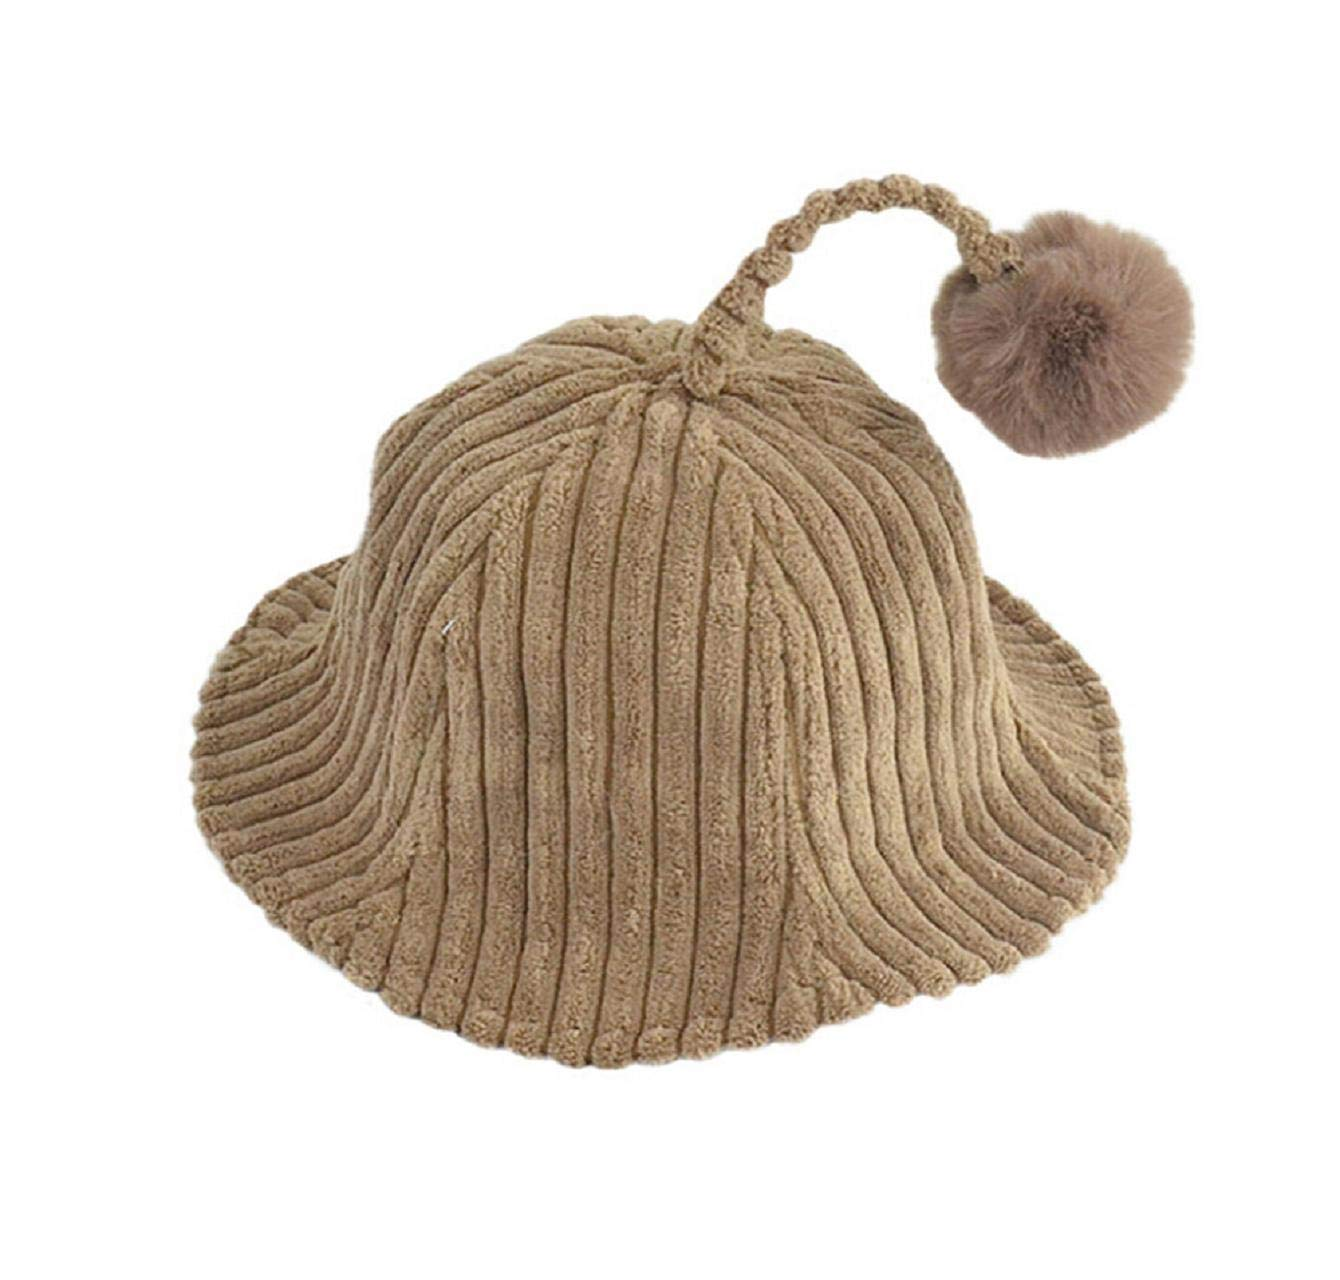 Christmas Day Party 1-3Years Dancing Casual Daily Barlingrock Winter Warm Cap for Infant Birthday Baby Boys Girls Fisherman Corduroy Head Lovely Hats for Photoshoot